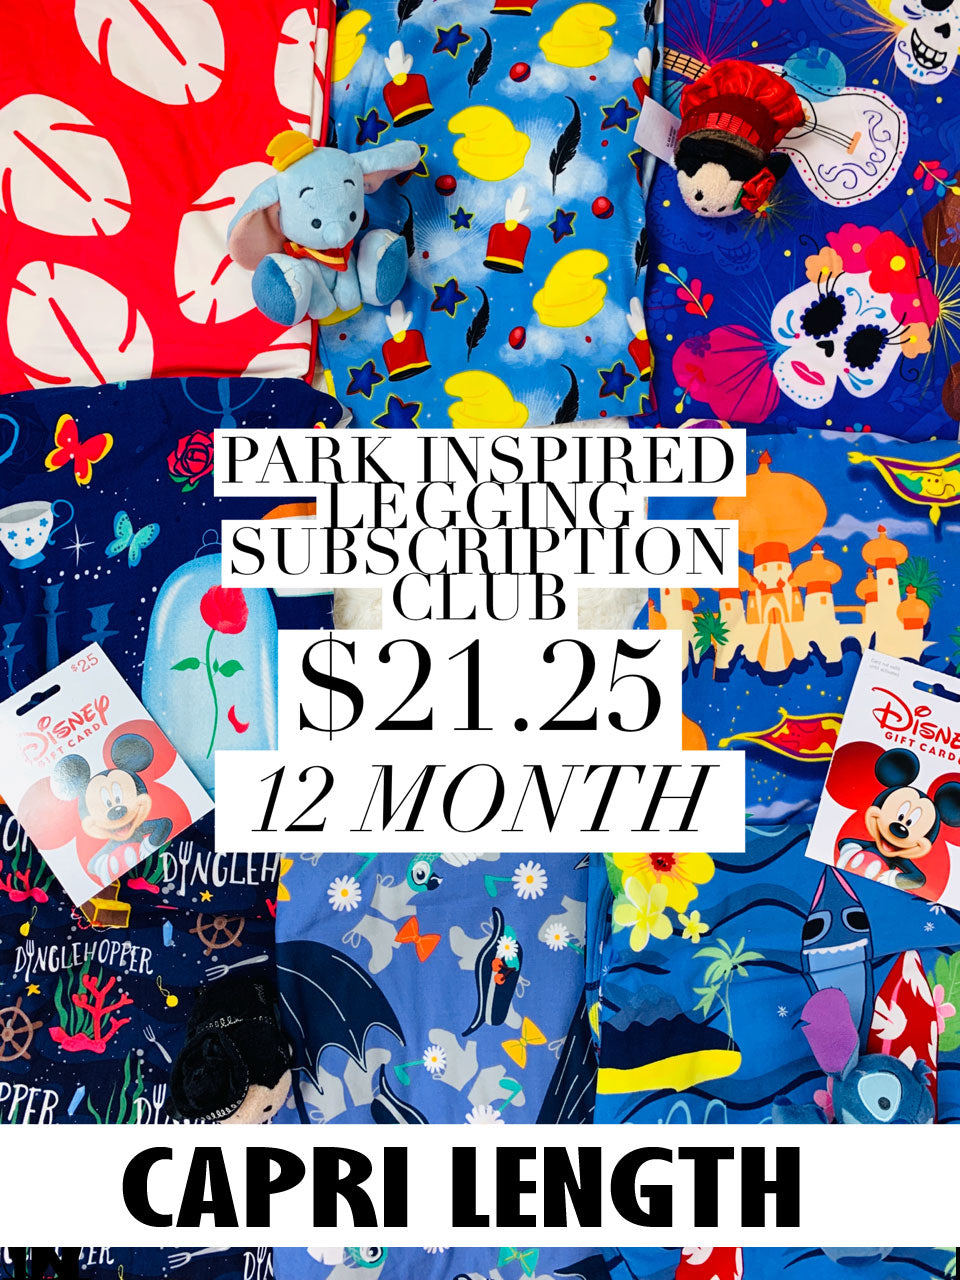 Park Inspired Capri Leggings Subscription Club - 12 Month Subscription